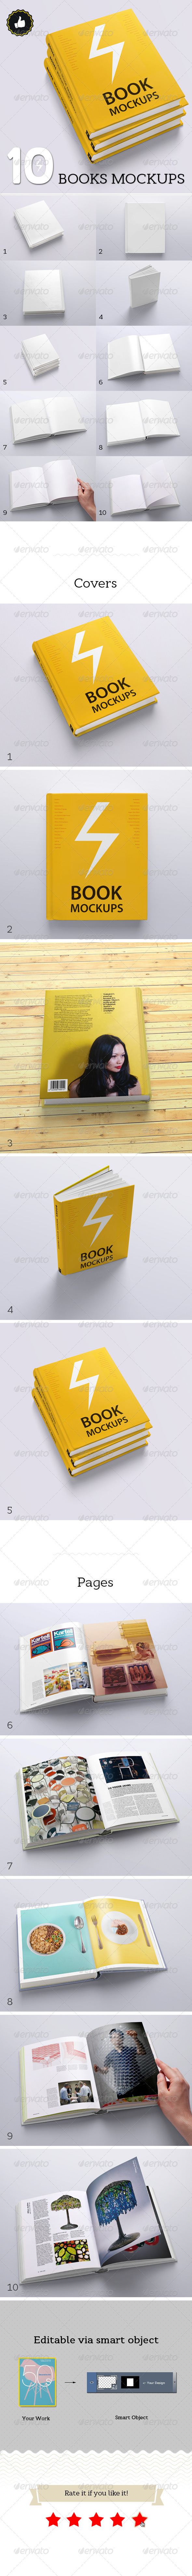 GraphicRiver Book Mockups 10 Different Images 5590767